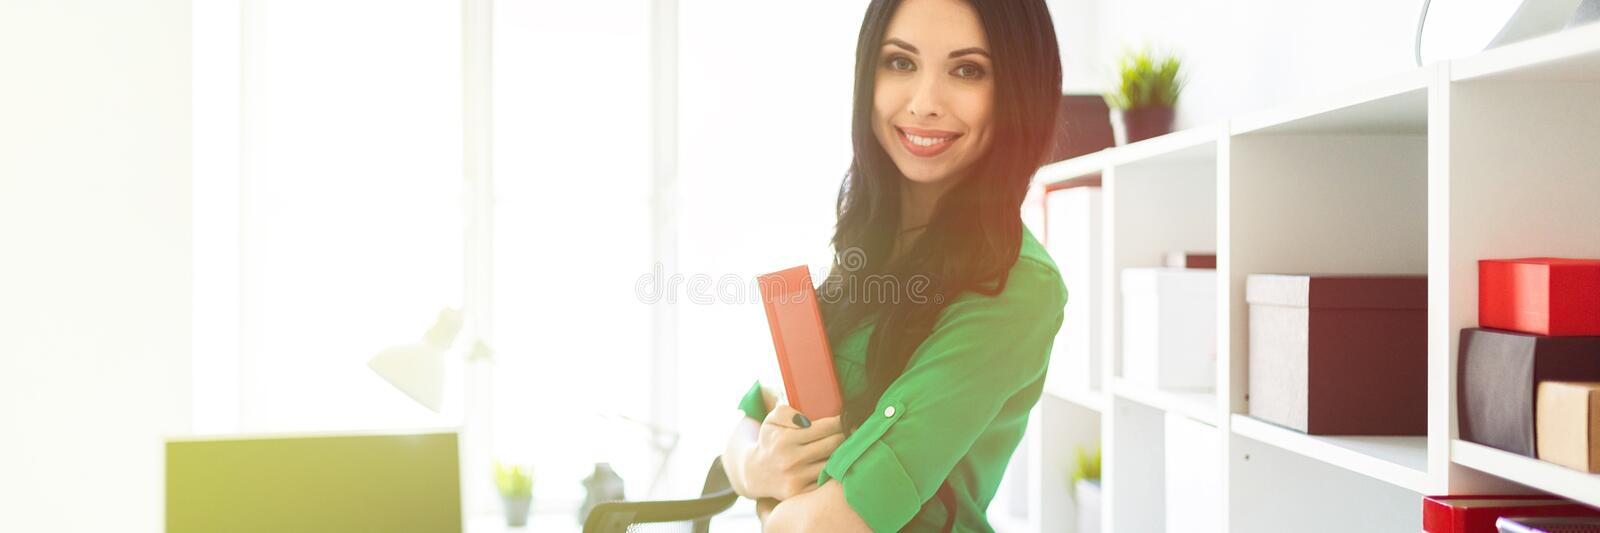 A young girl in the office is holding a folder with documents. stock photos